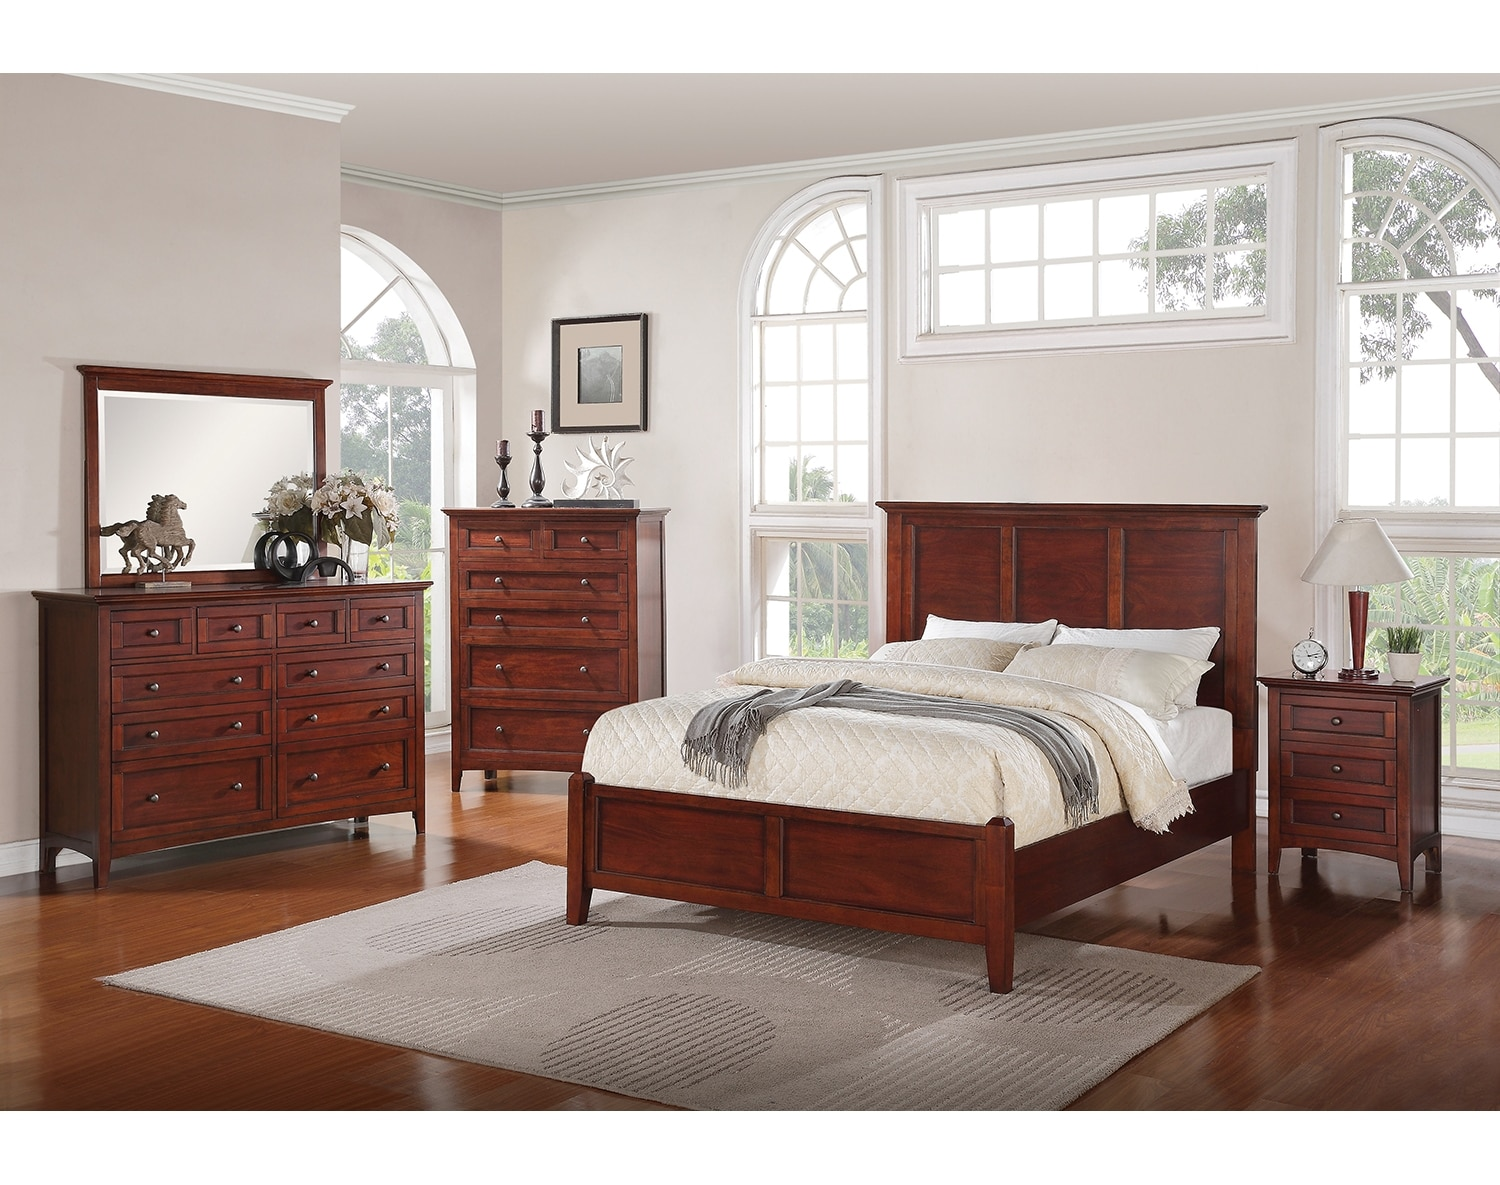 The Forest Lake Collection - Mahogany